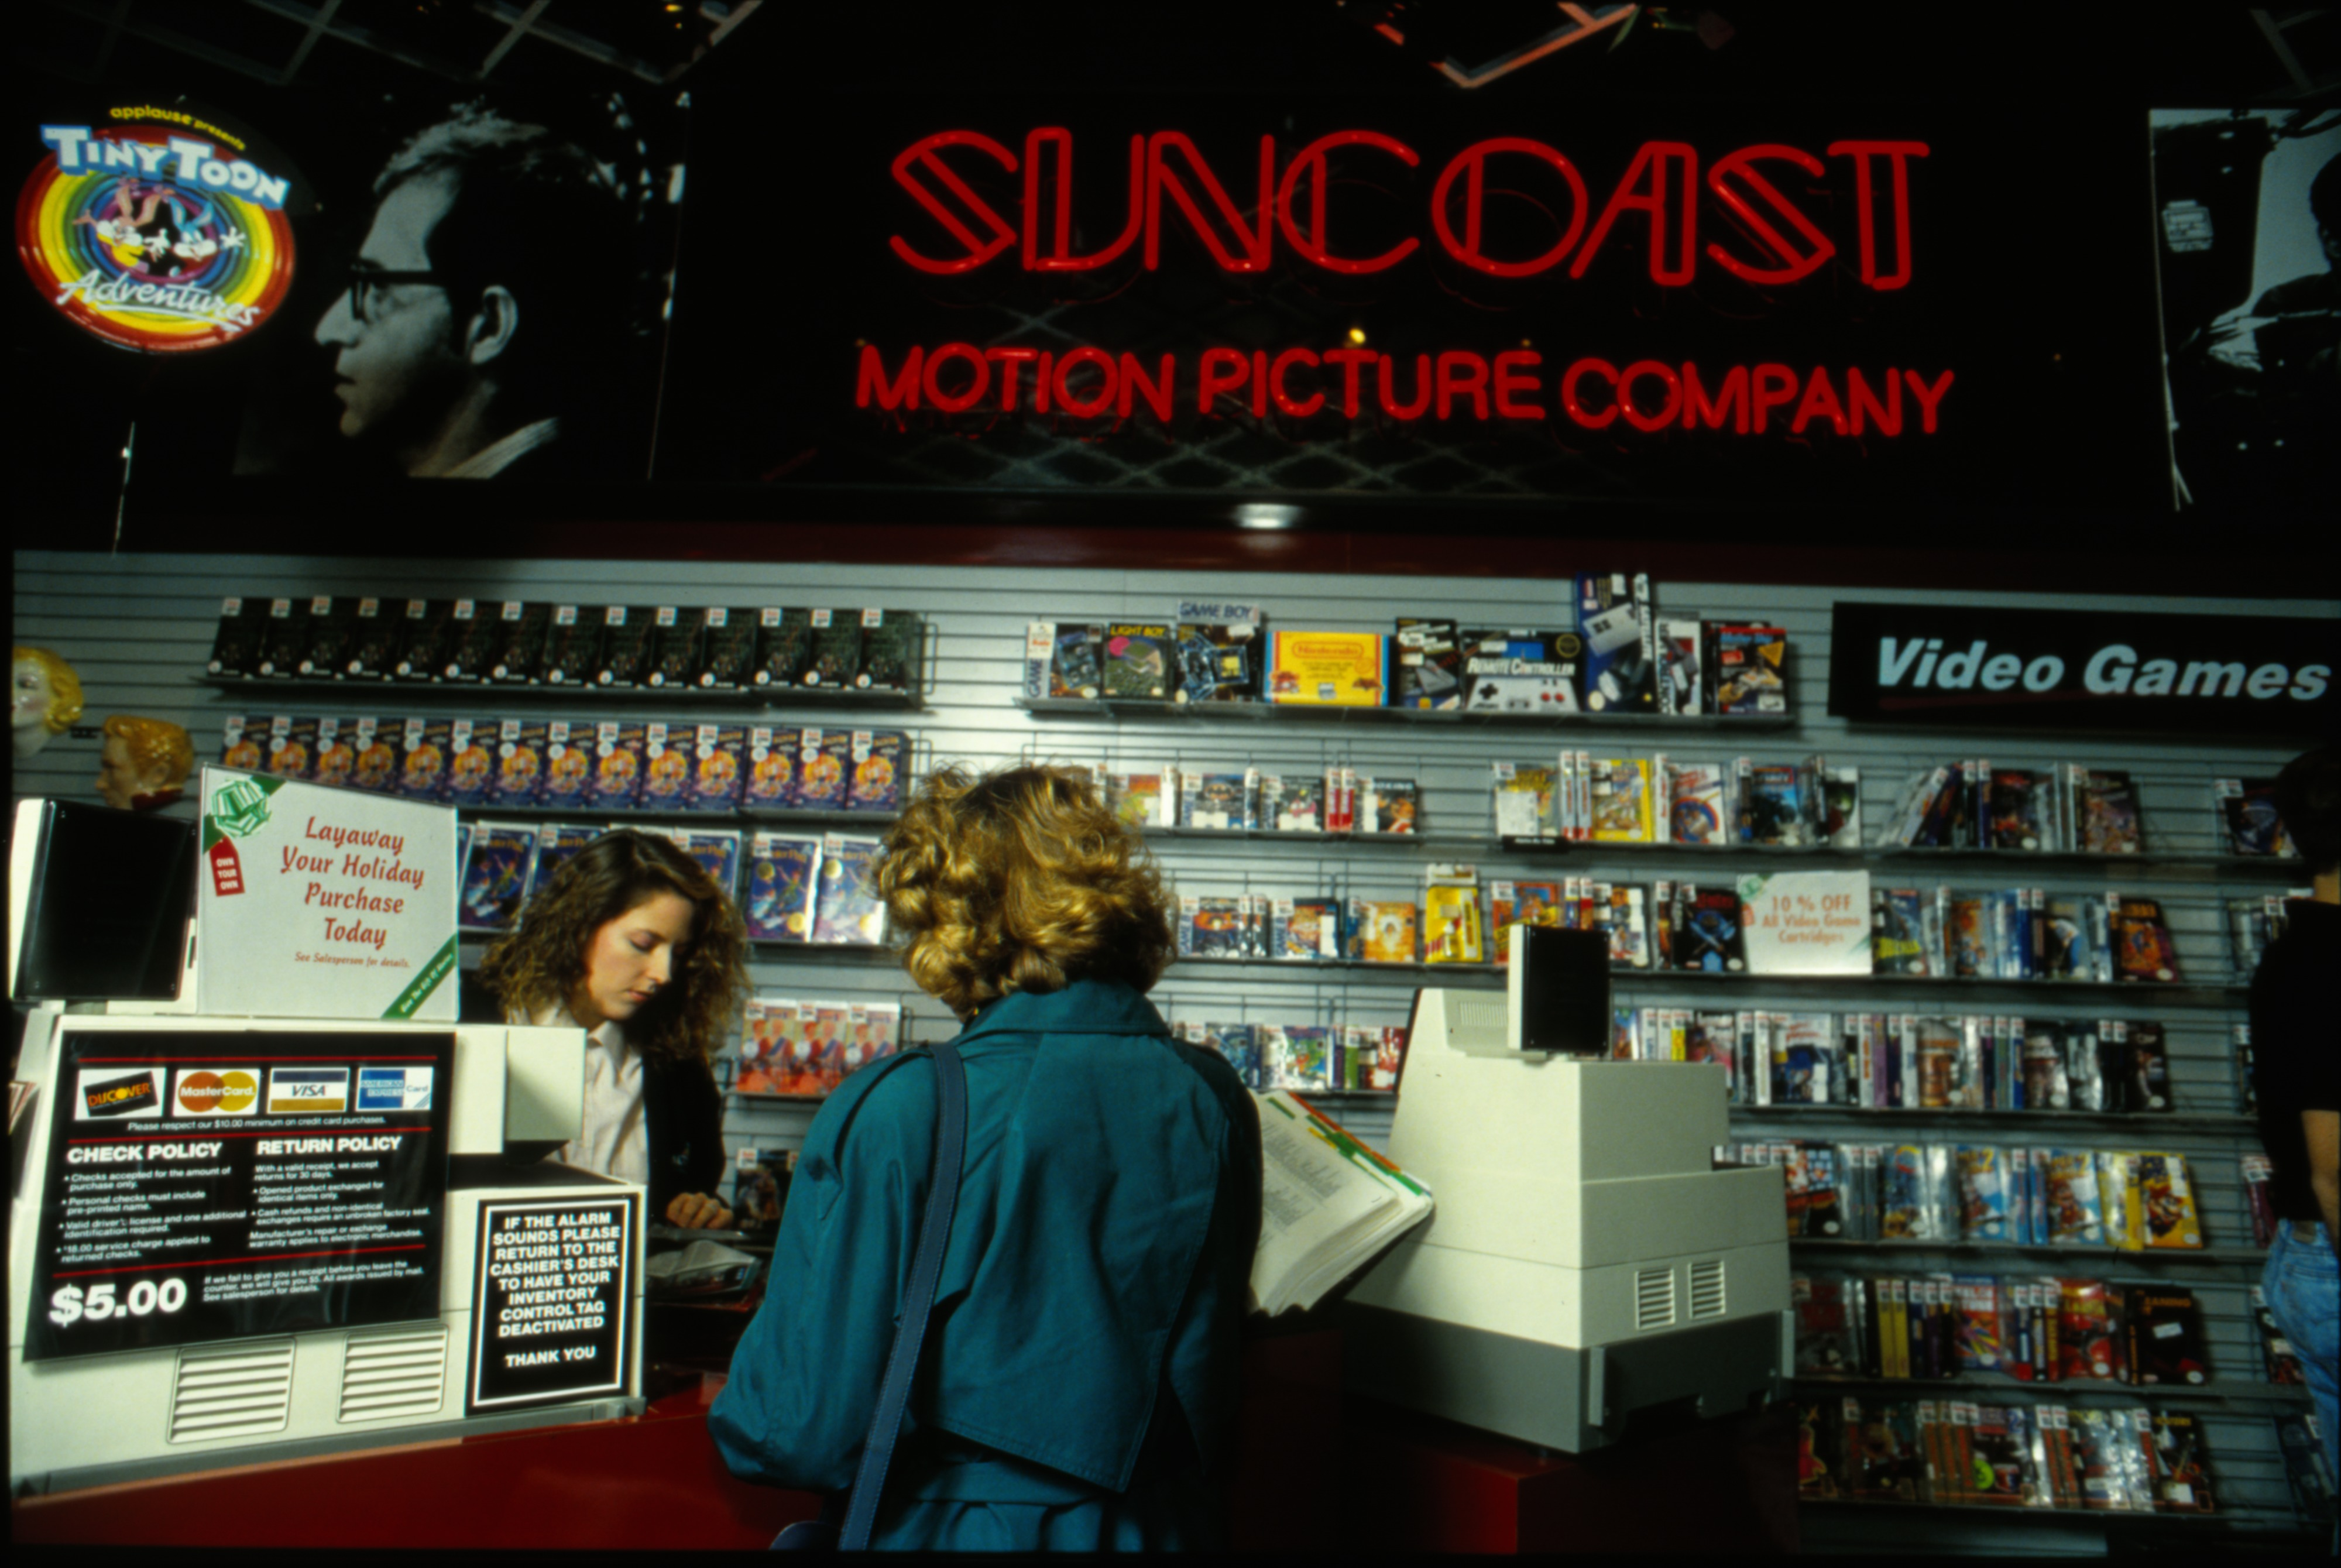 Suncoast Motion Picture Company, Briarwood Mall, November 1990 image